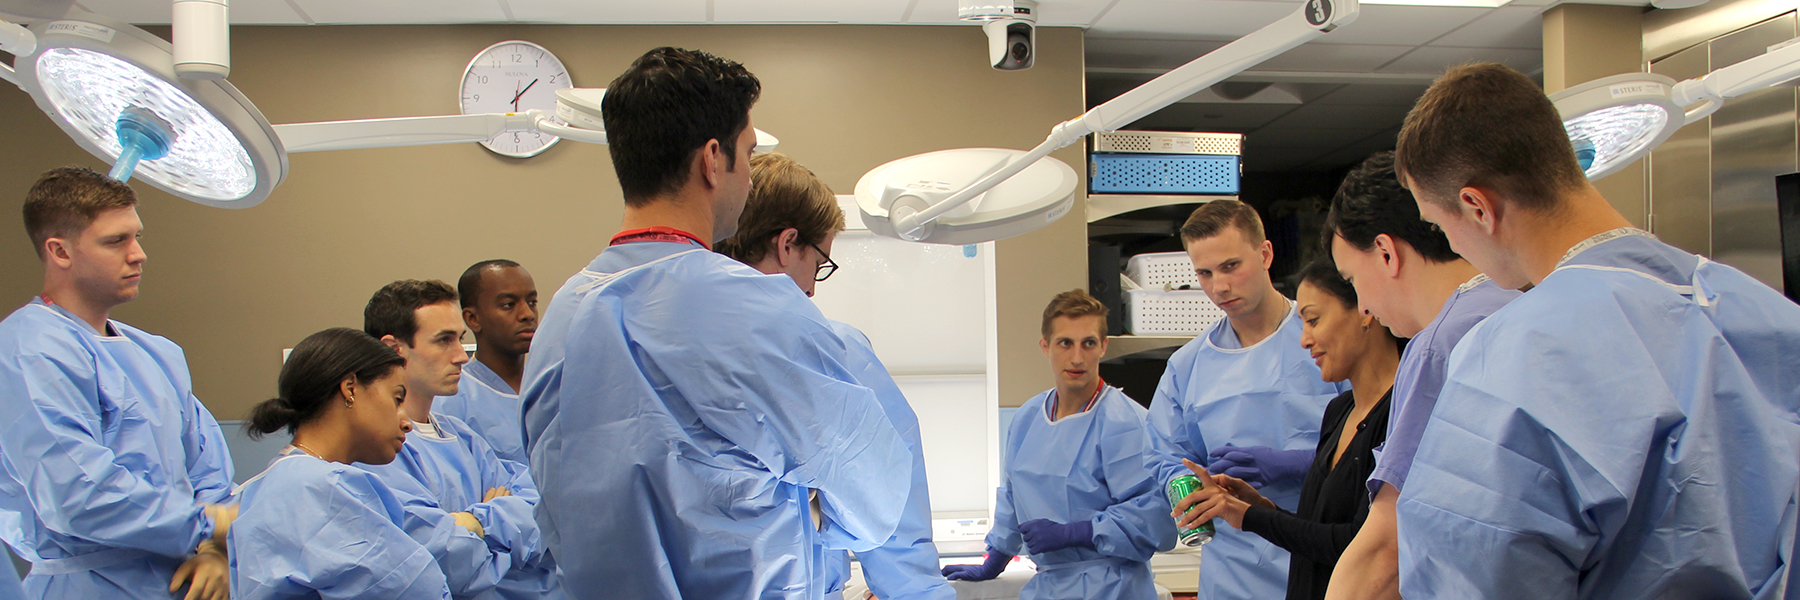 Banner image of Dr. Duretti Fufa training a group of orthopaedic residents.